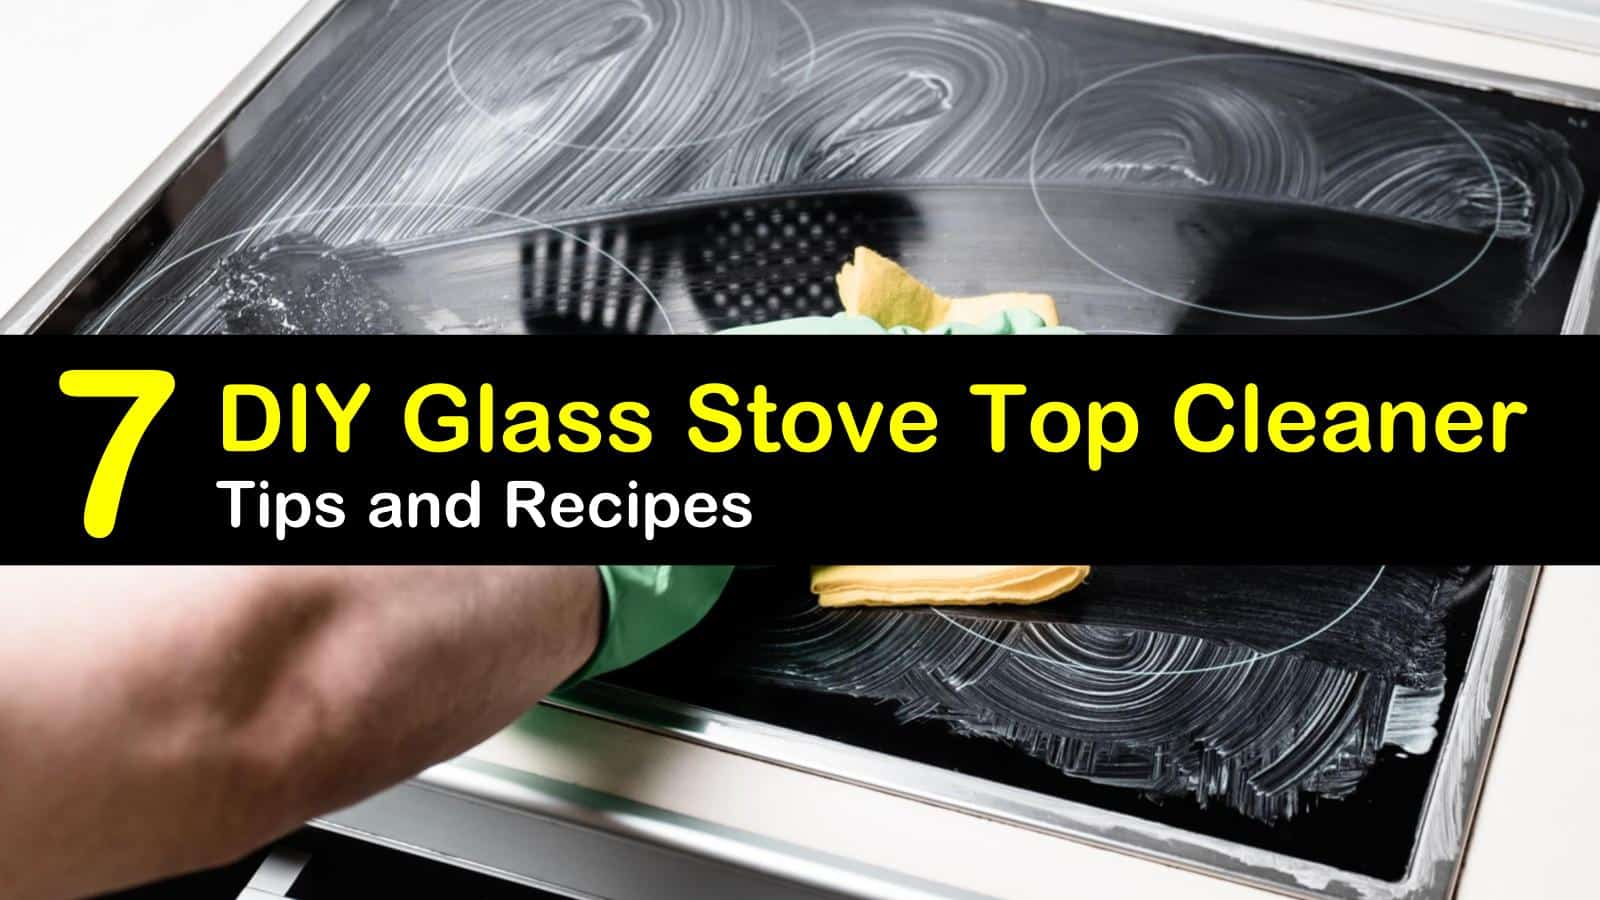 7 Make-Your-Own Glass Stove Top Cleaner